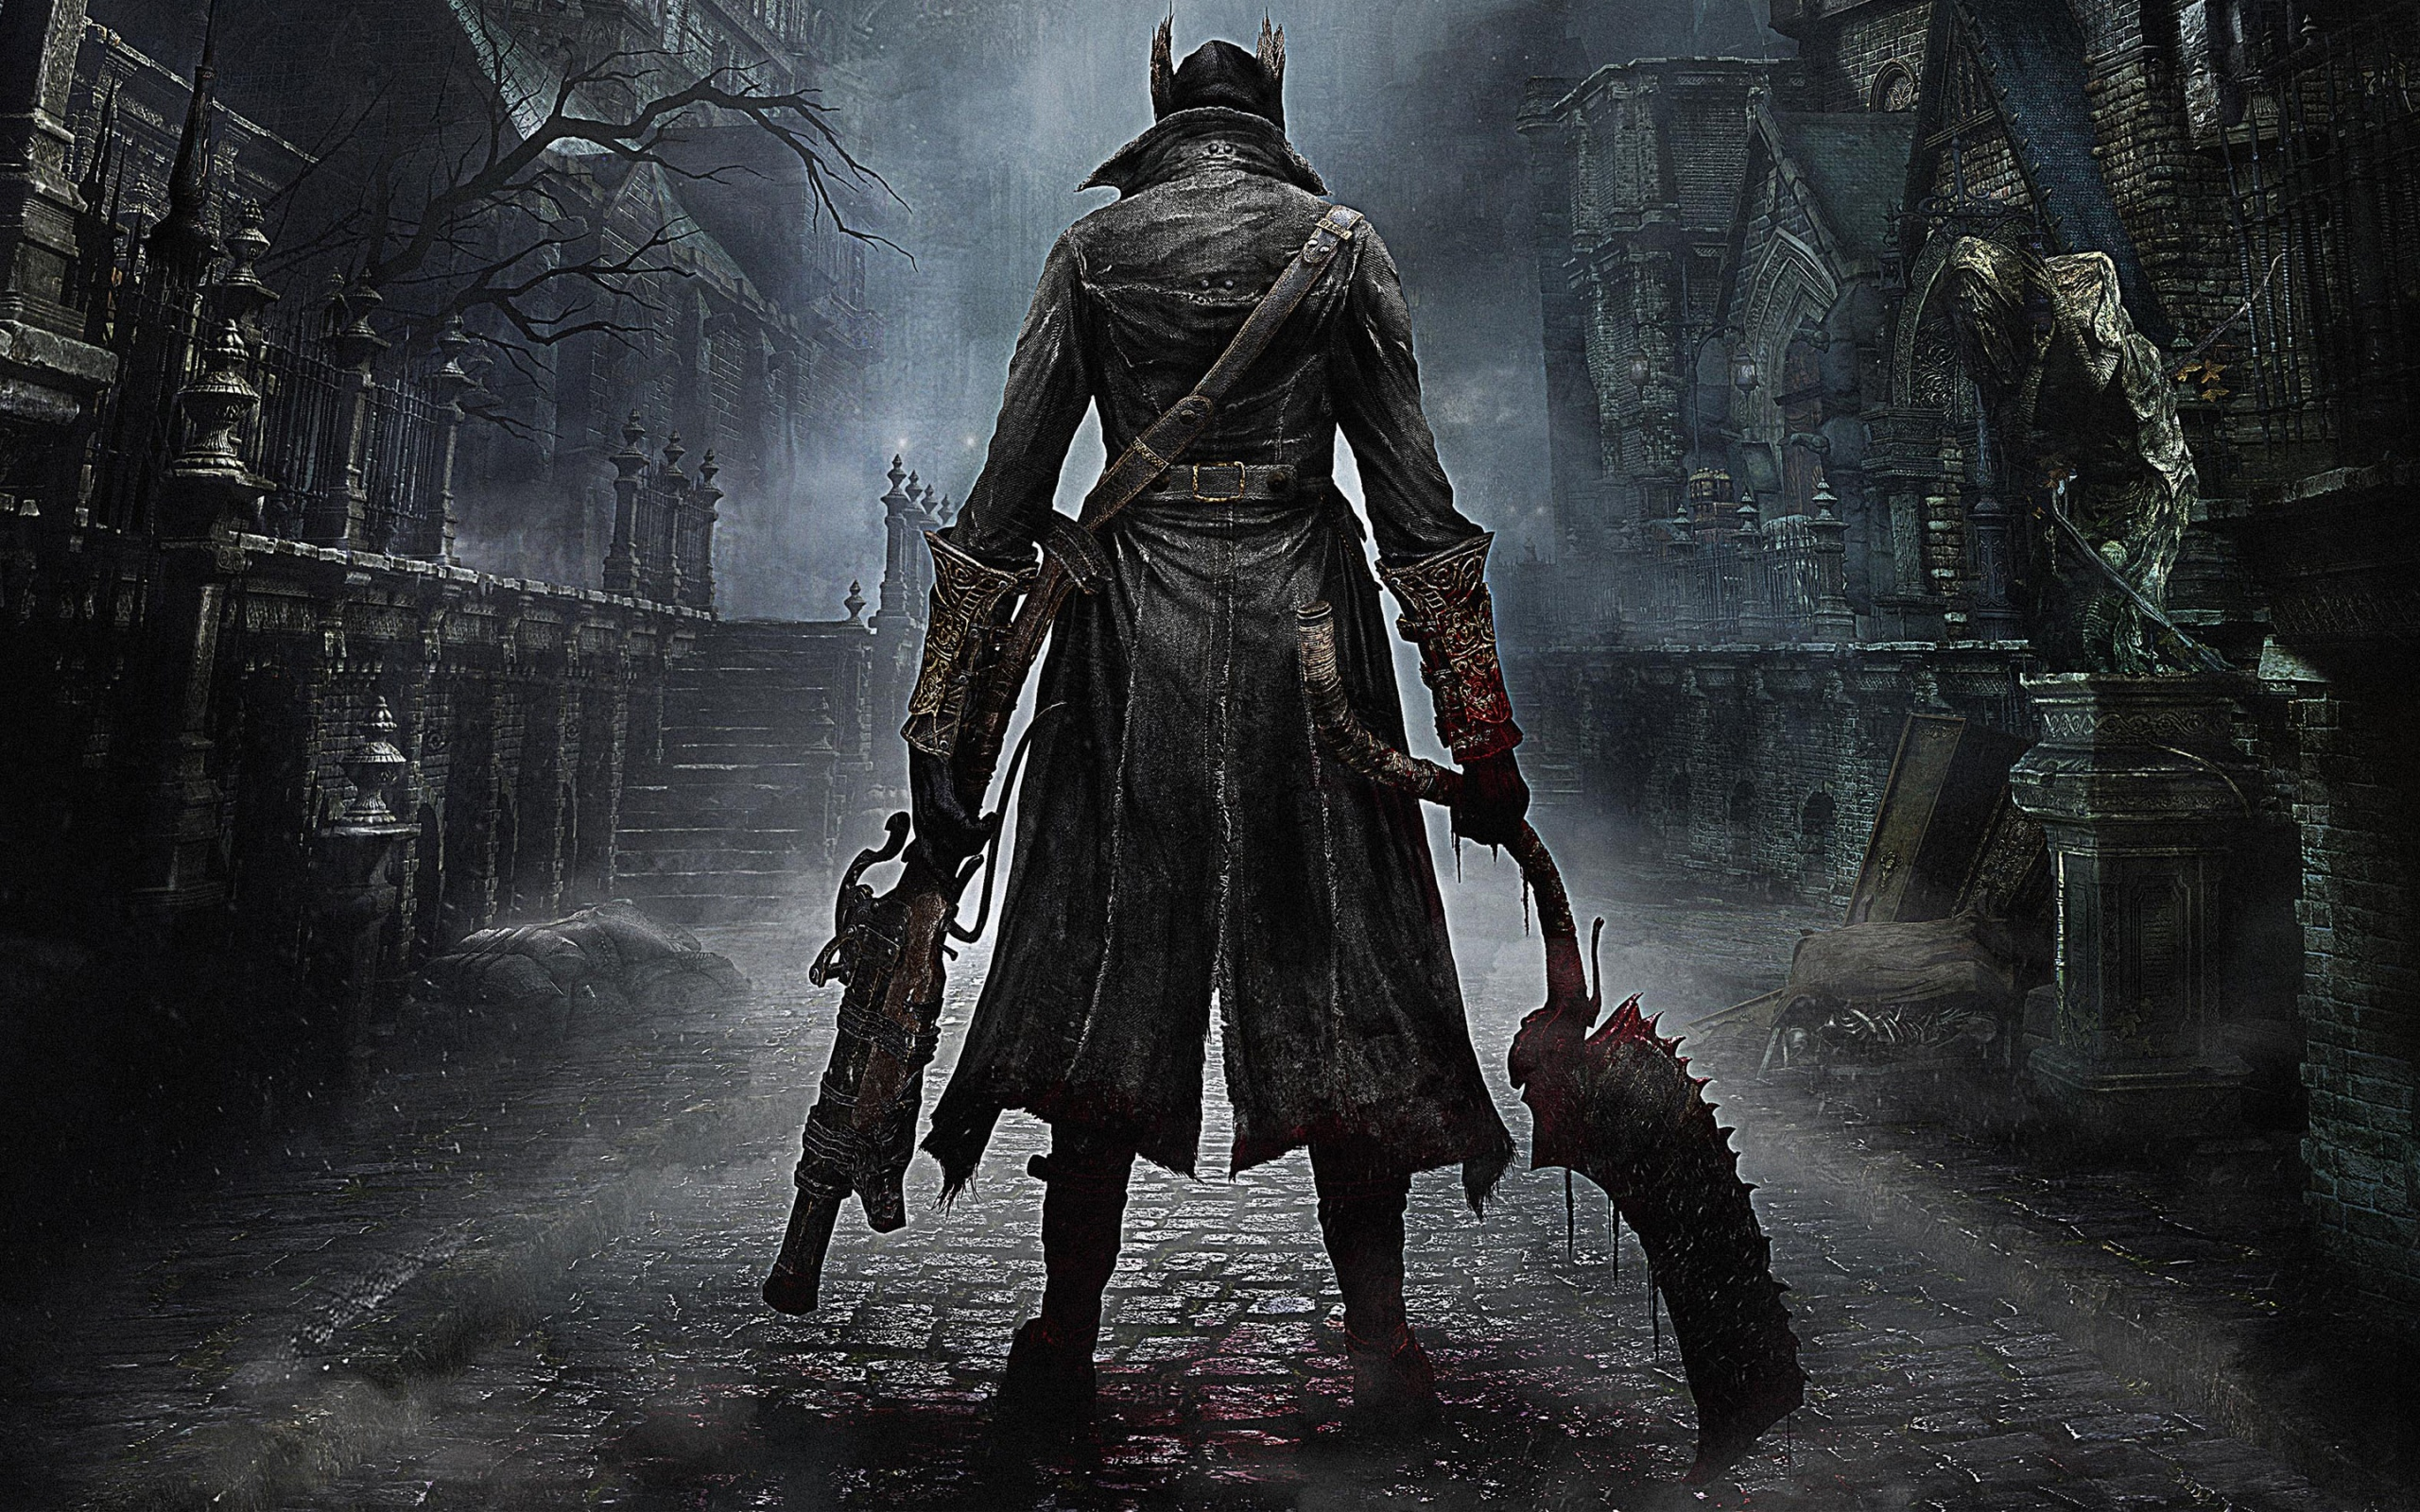 Bloodborne ps4 game wallpapers in jpg format for free download - Bloodborne download ...